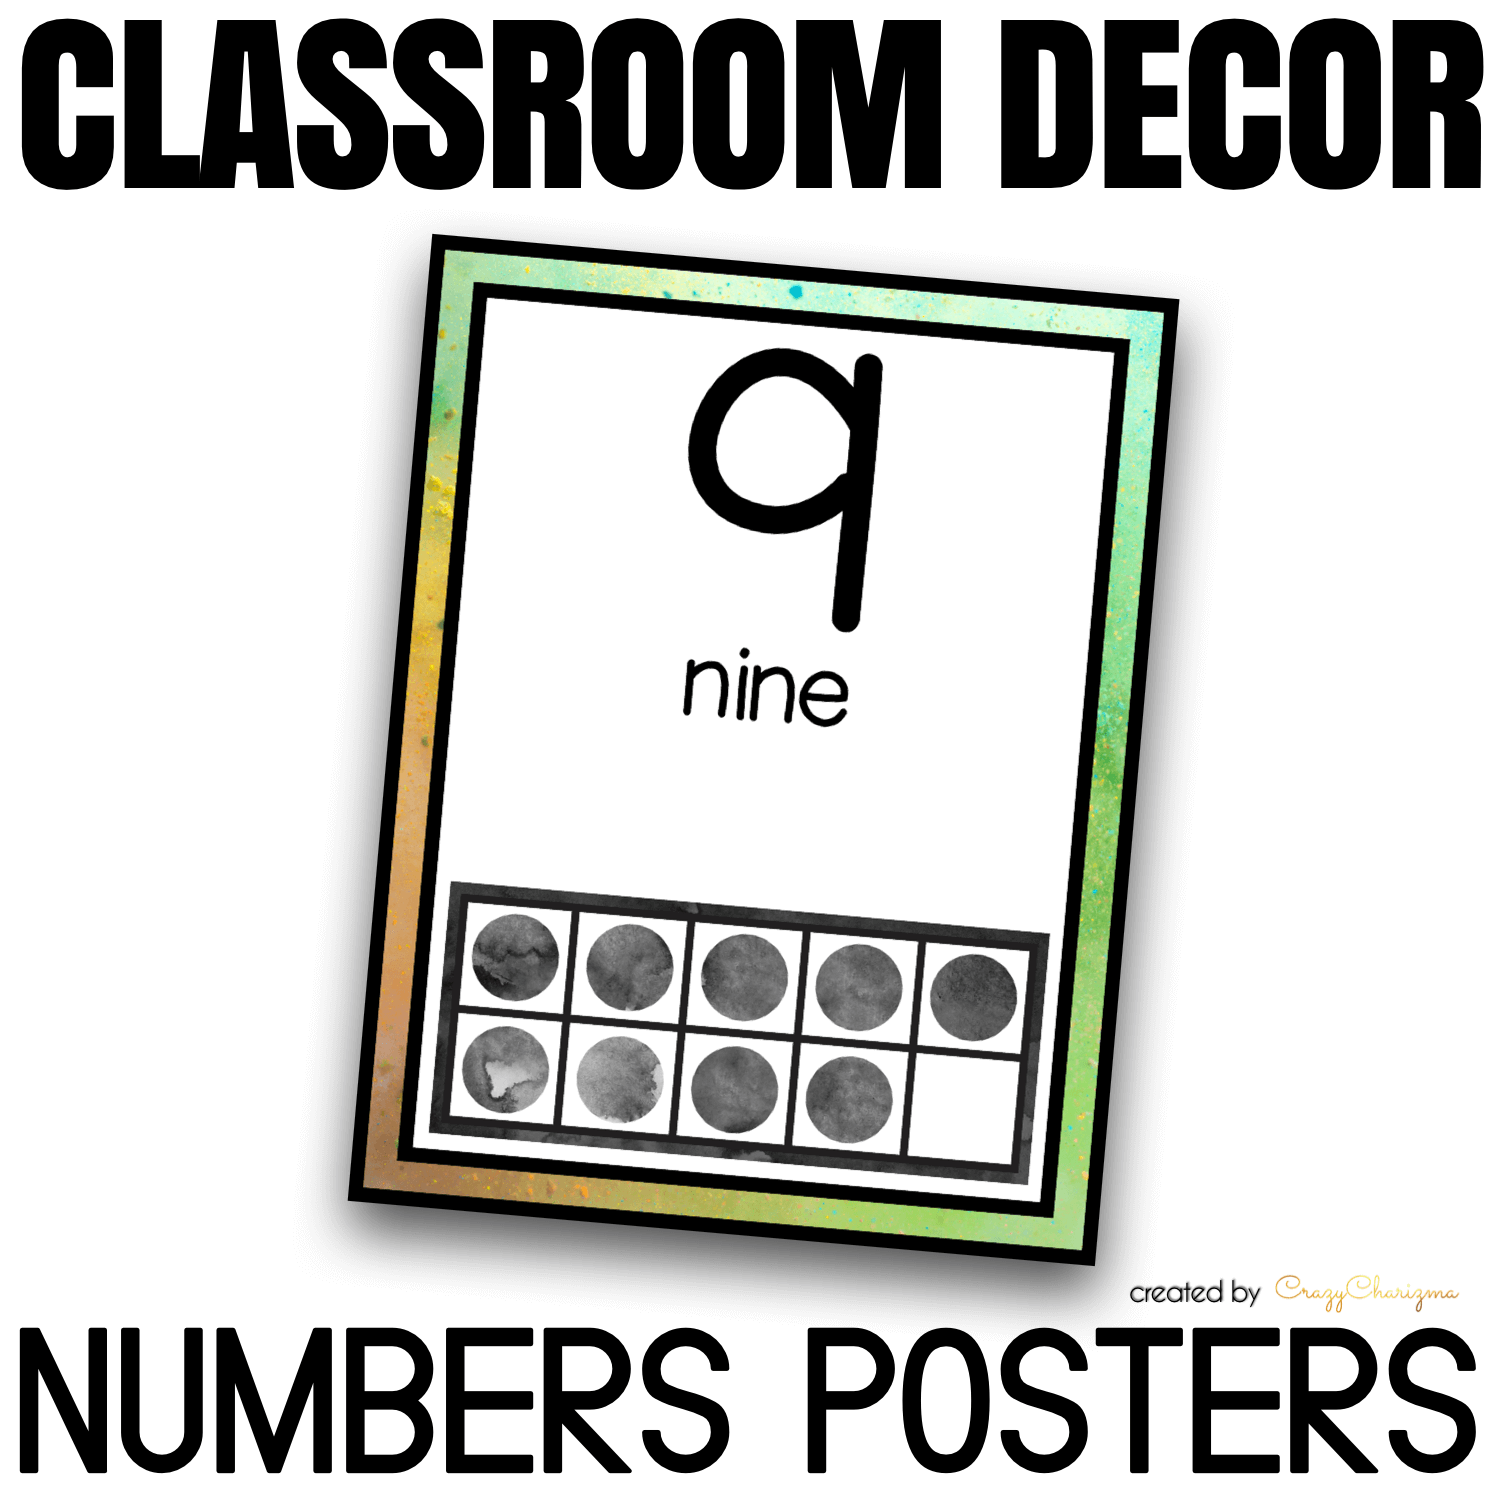 Looking for bright and clear numbers posters? Spice your classroom with this visually appealing SPLASH classroom decor!